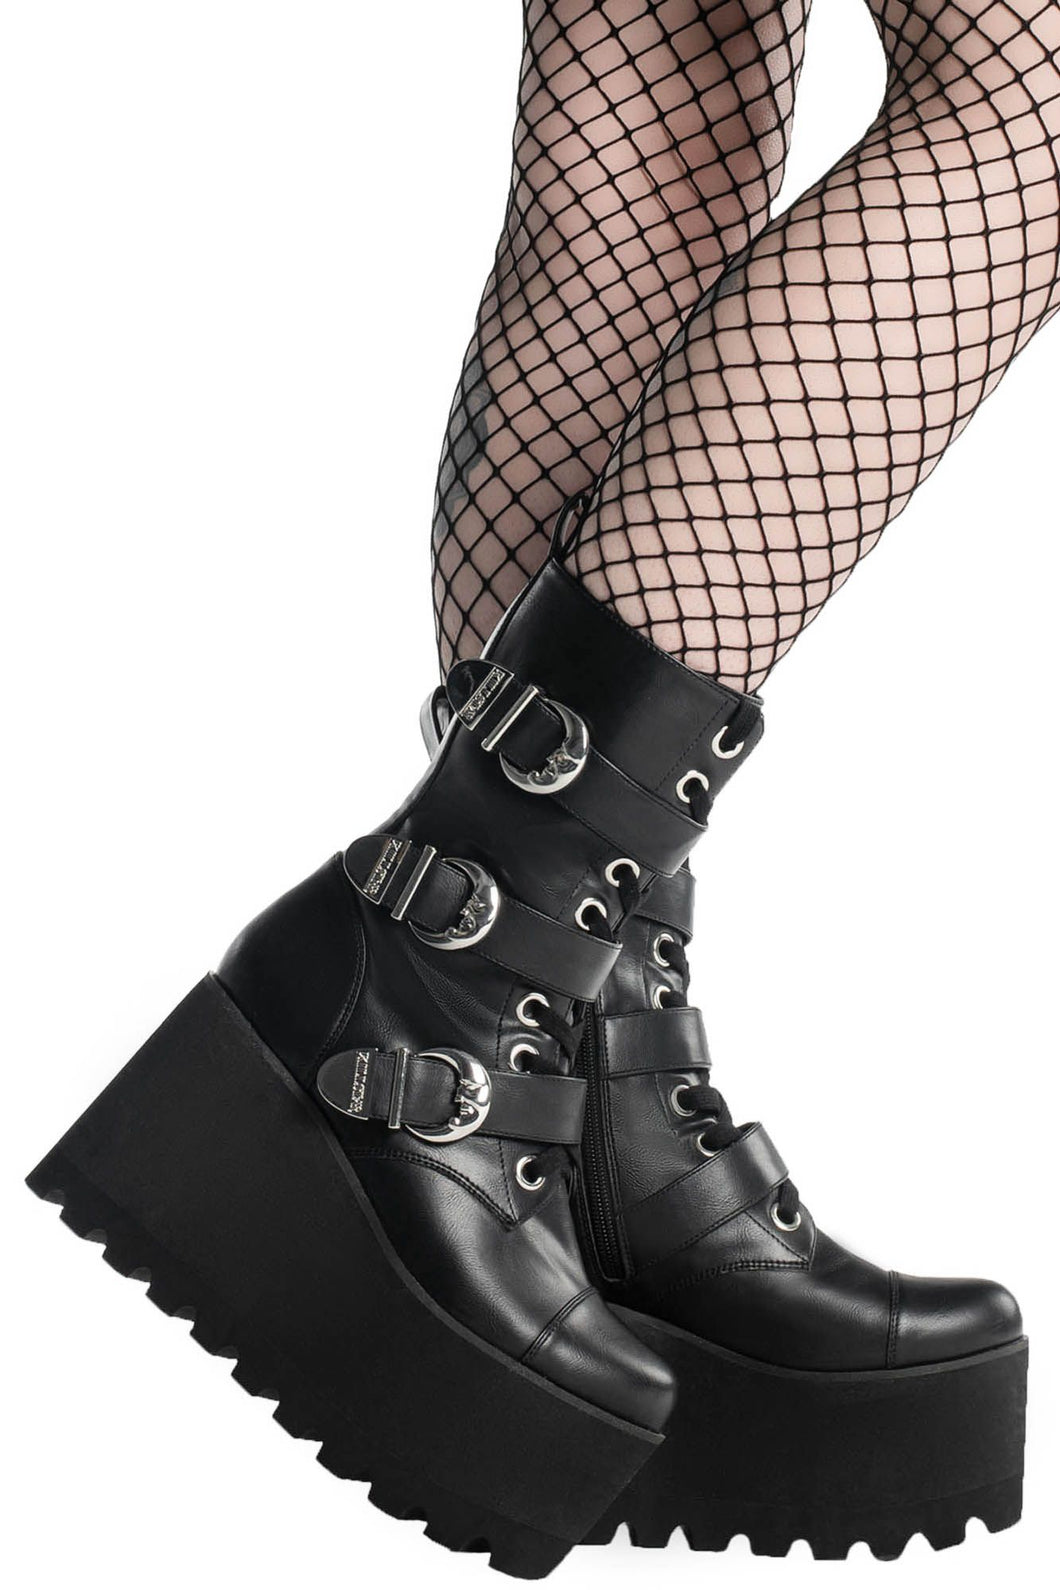 Killstar Oracle Wedge Boots - Kate's Clothing